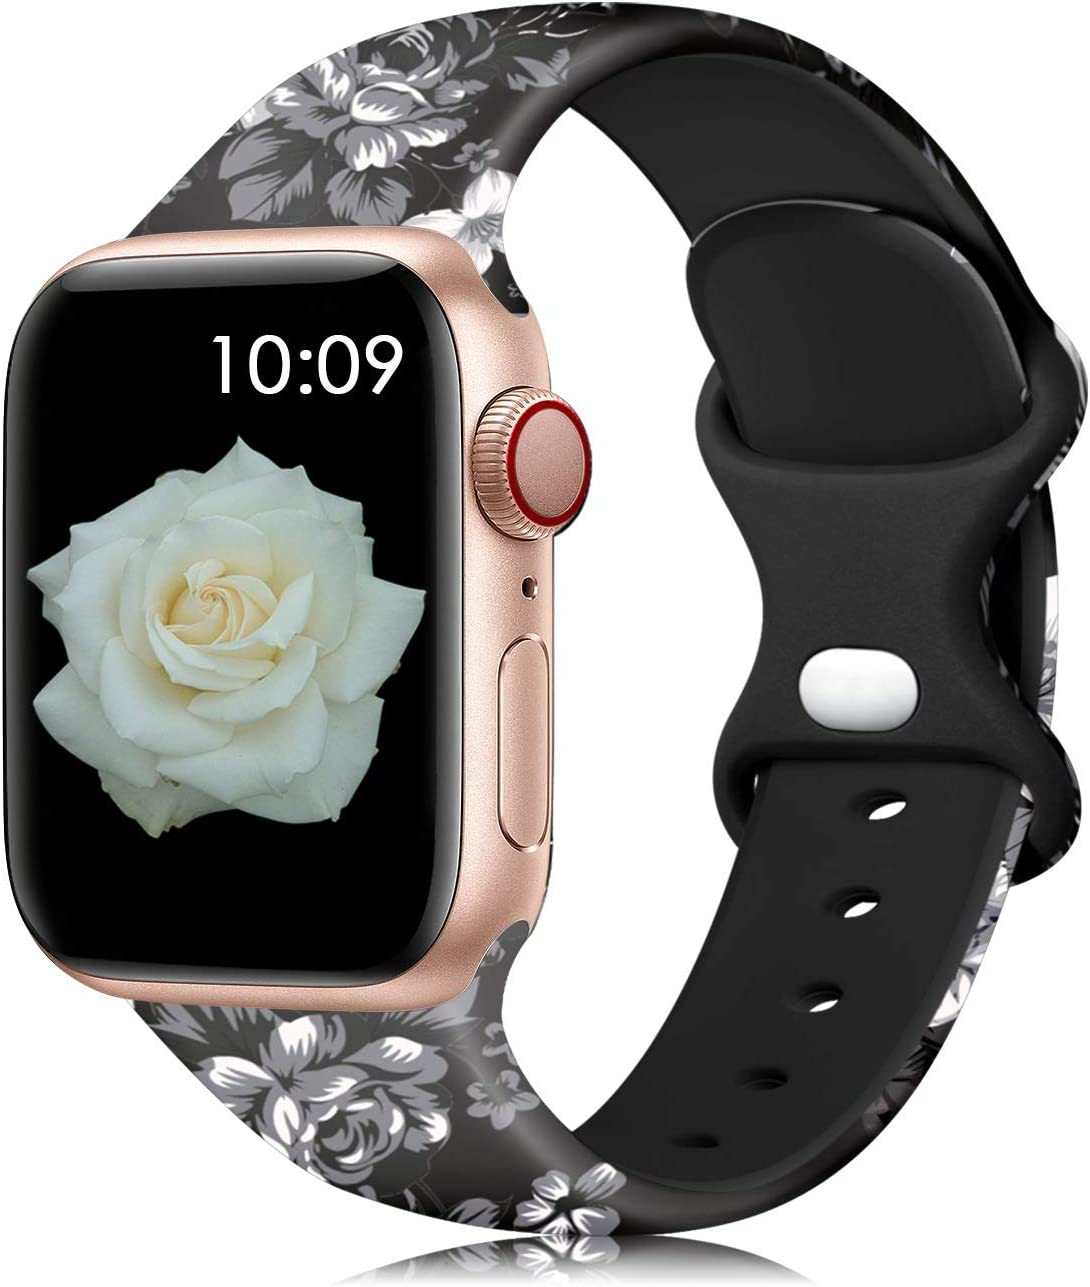 Lerobo Floral Bands Compatible with Apple Watch Band 40mm 38mm for Women Girls Men, Fadeless Cute Floral Pattern Printed Silicone Replacement Band for iWatch SE Series 6 5 4 3 2 1, Black Flower S/M